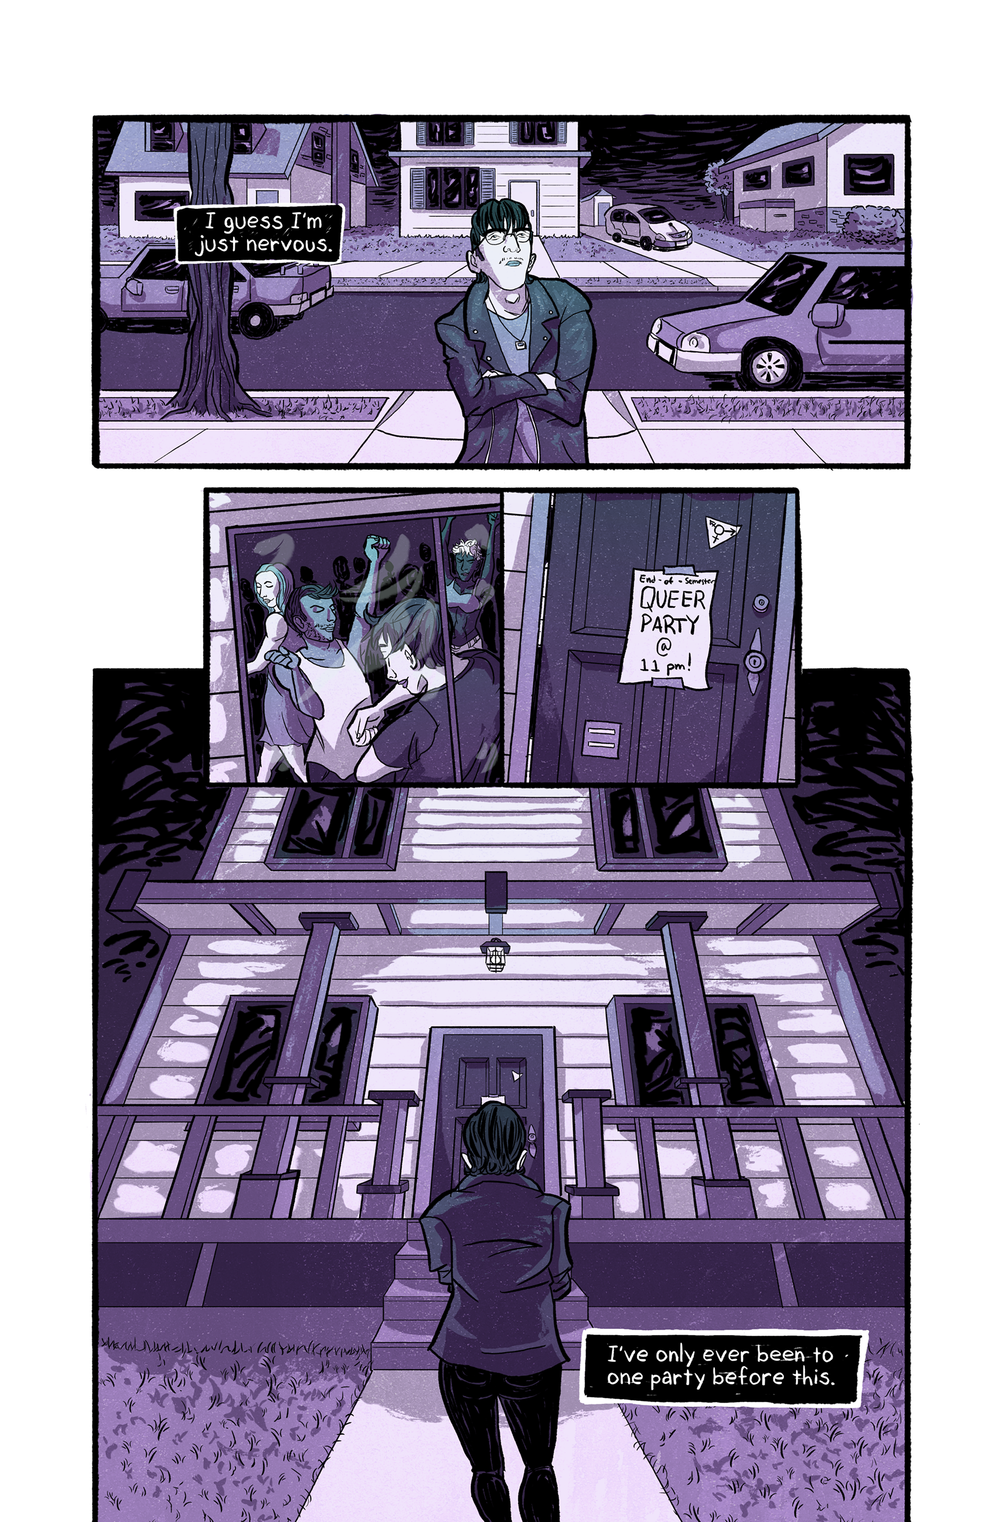 02untitled sad gay boy comic - page 01.png